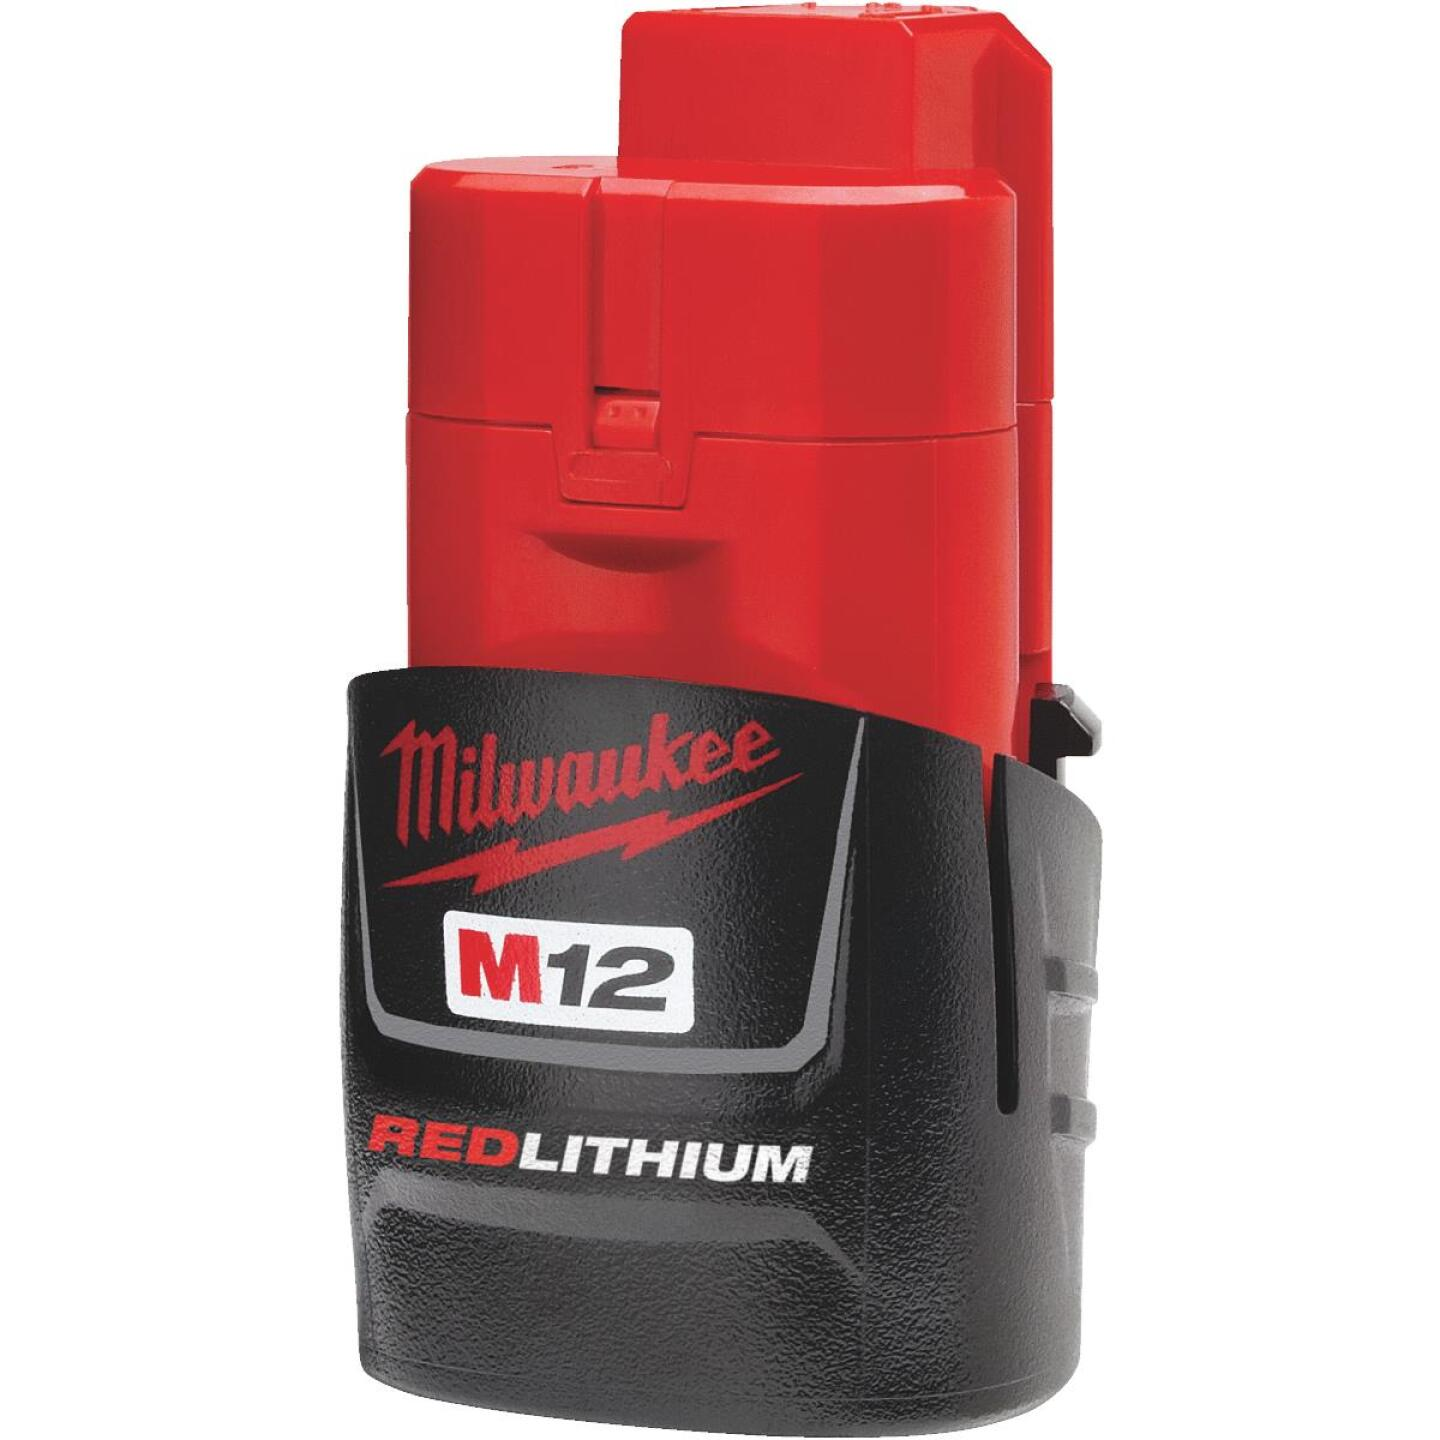 Milwaukee M12 REDLITHIUM 12 Volt Lithium-Ion 1.5 Ah Compact Tool Battery Image 2